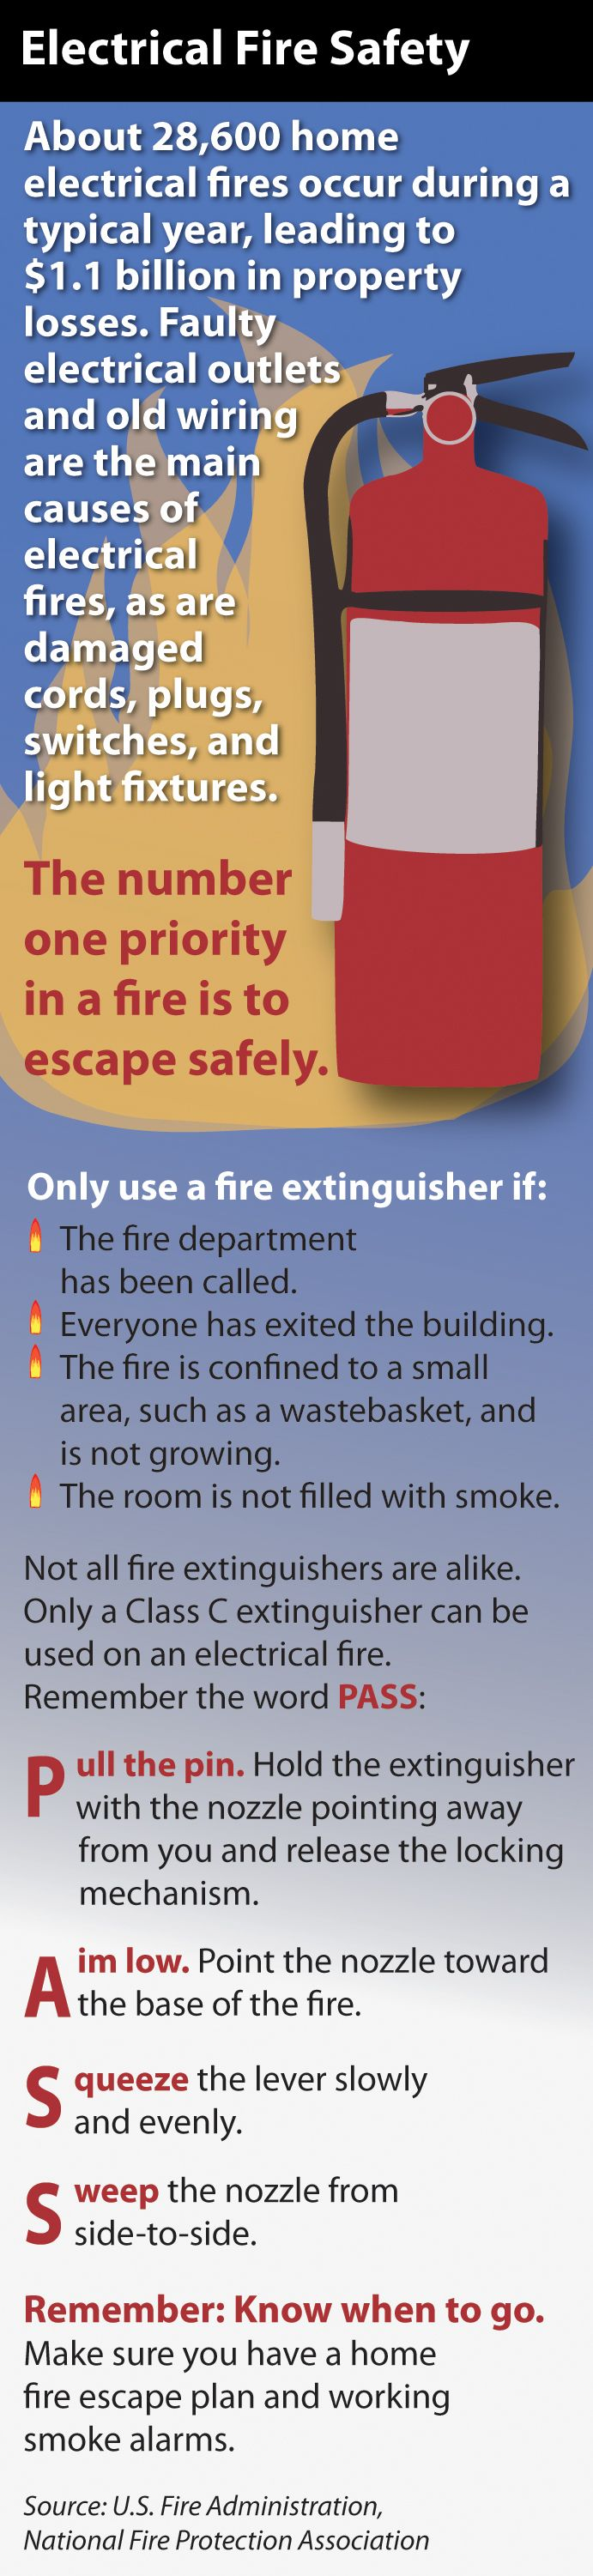 Remember the word PASS when operating a #fireextinguisher: Pull the pin. Aim low. Squeeze. Sweep.